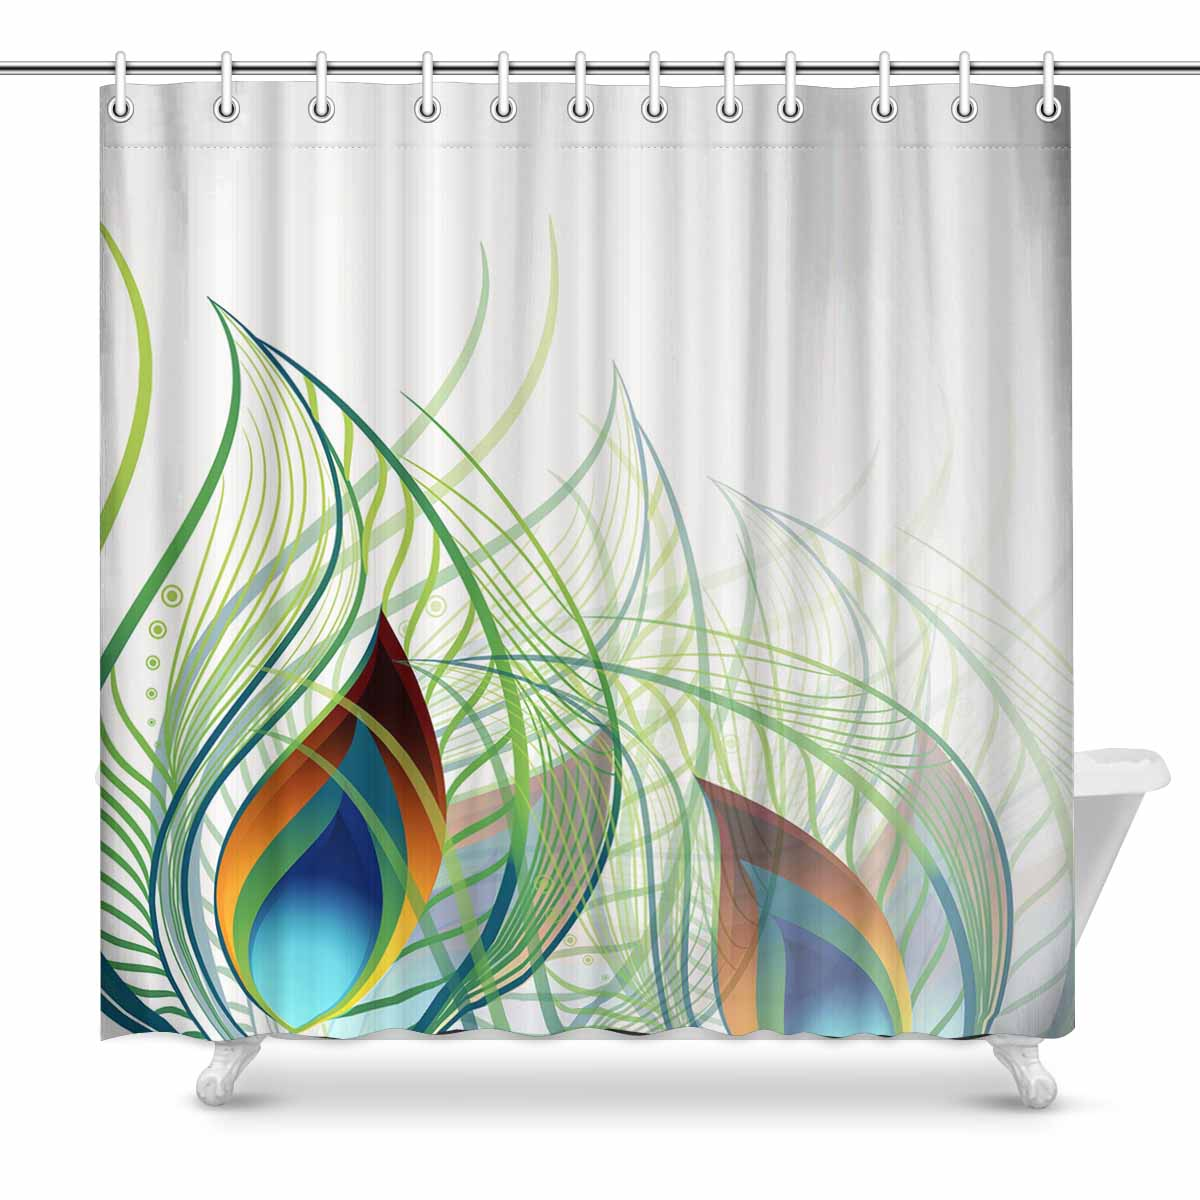 Shower Curtains Print With Abstract Peacock Feather Backgroud Design